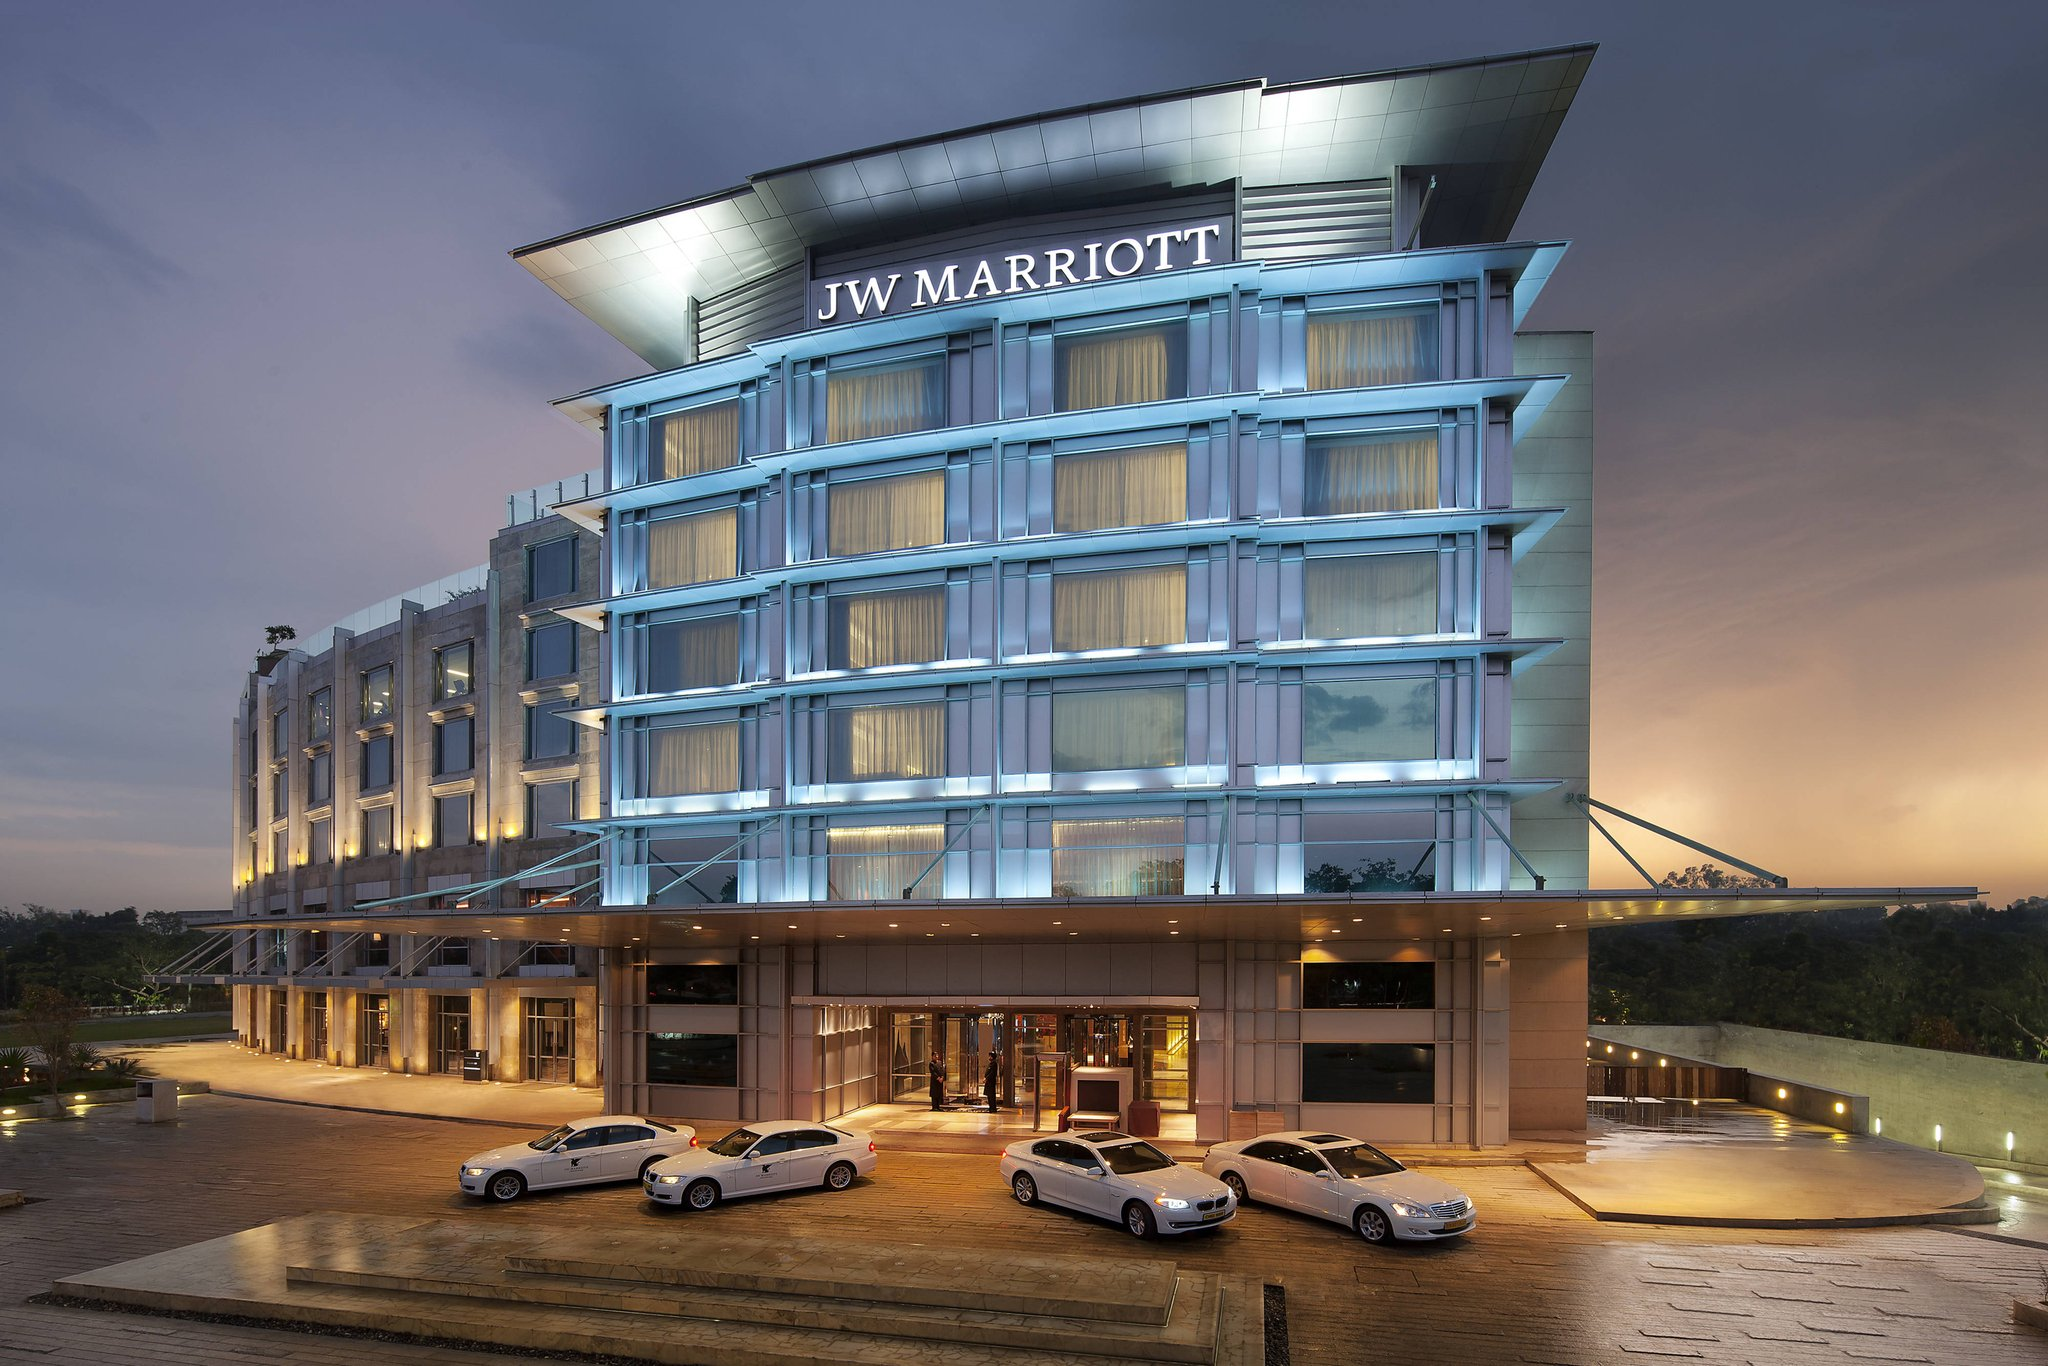 JW Marriott Chandigarh Hotel